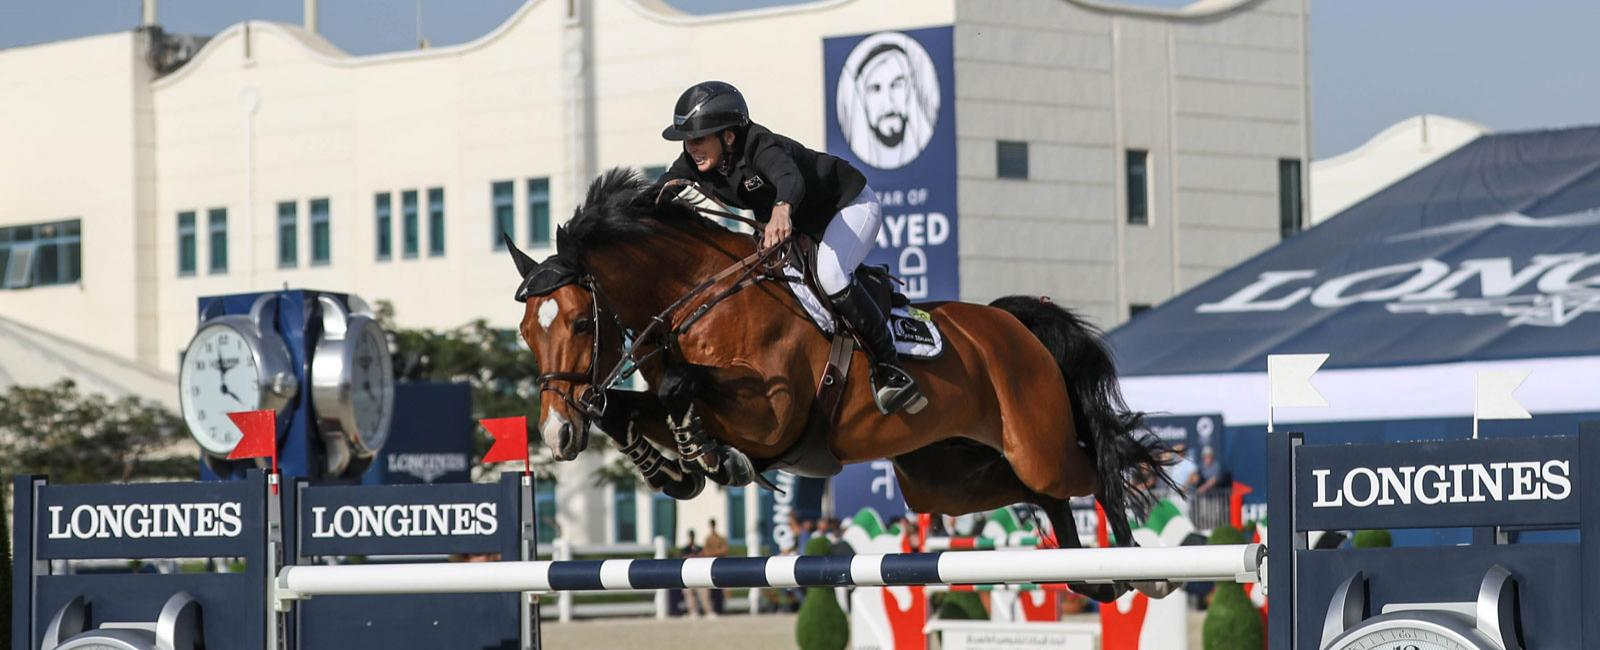 President of UAE Show Jumping CUP CSIO5* presented by Longines; 2018